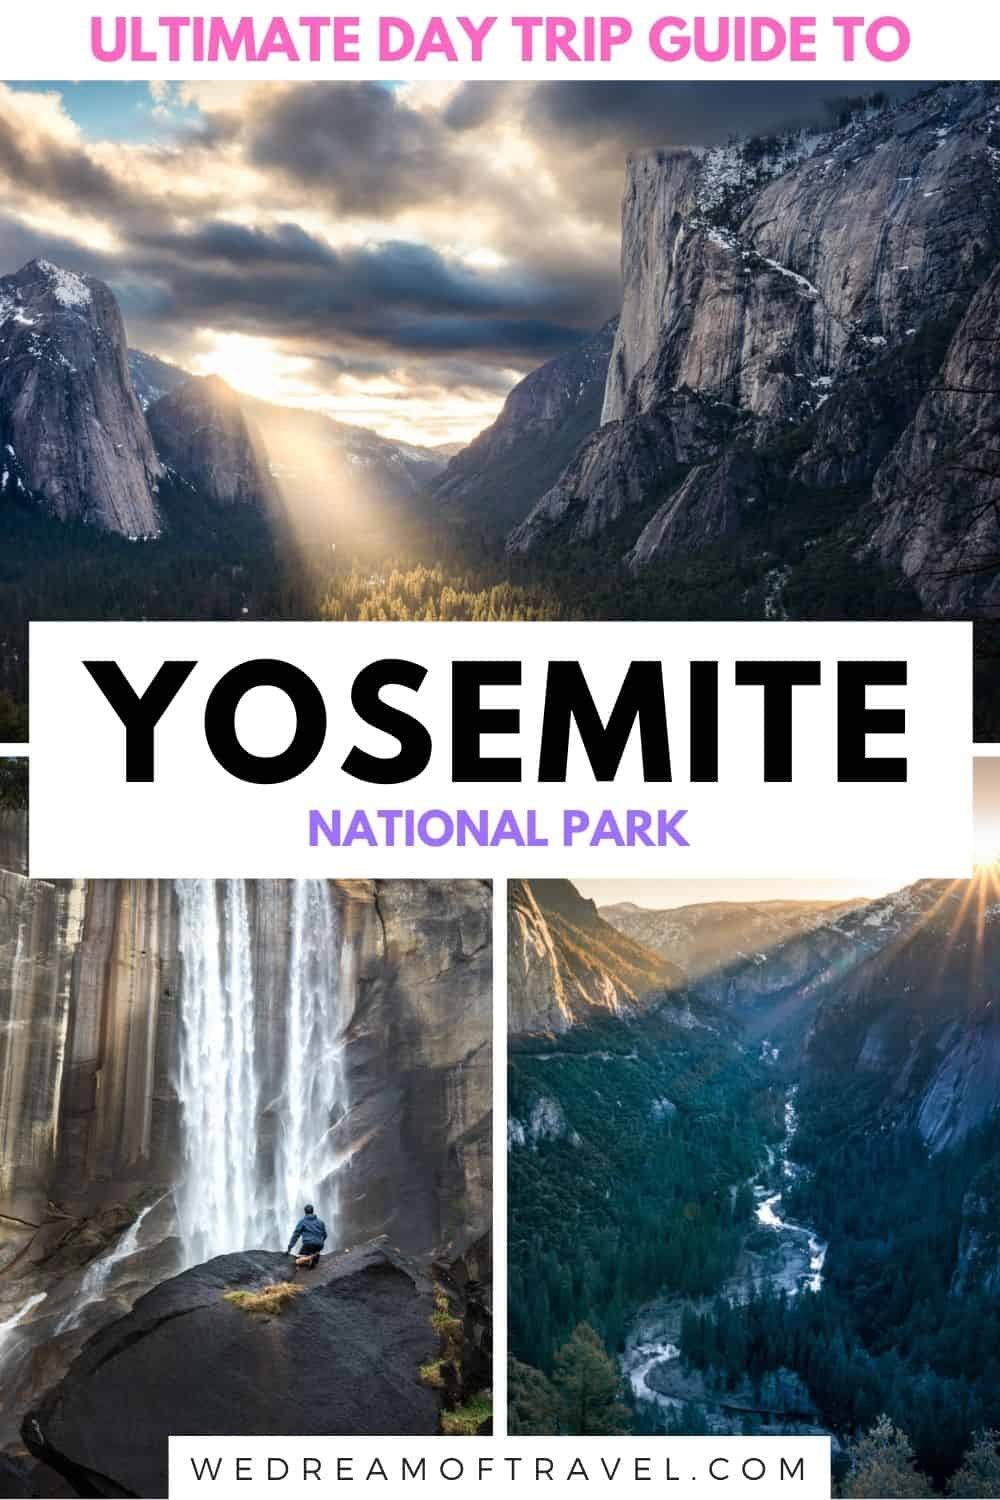 Planning a day trip to Yosemite National Park?  Discover the perfect Yosemite one day itinerary to maximise your time in California's most beautiful national park.  Yosemite National Park | Yosemity National Park in 1 day | 1 day in Yosemite | things to do in Yosemite National Park | Yosemite Day Trip | Half Dome | Yosemite viewpoints | Visit California